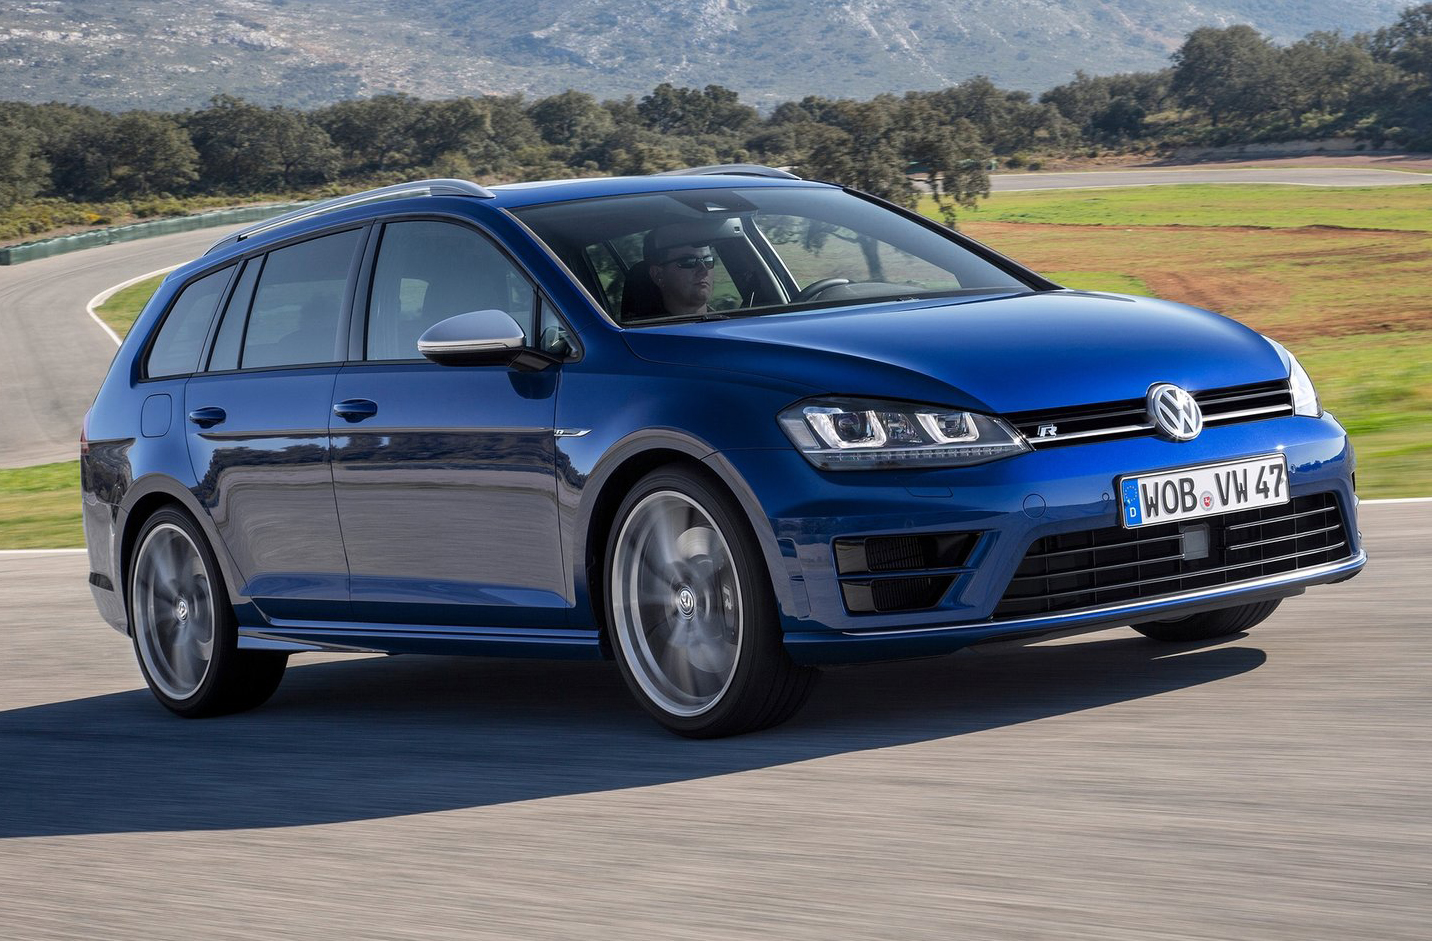 VW Golf R Wagon Locks Sights On Australia, October Launch Confirmed